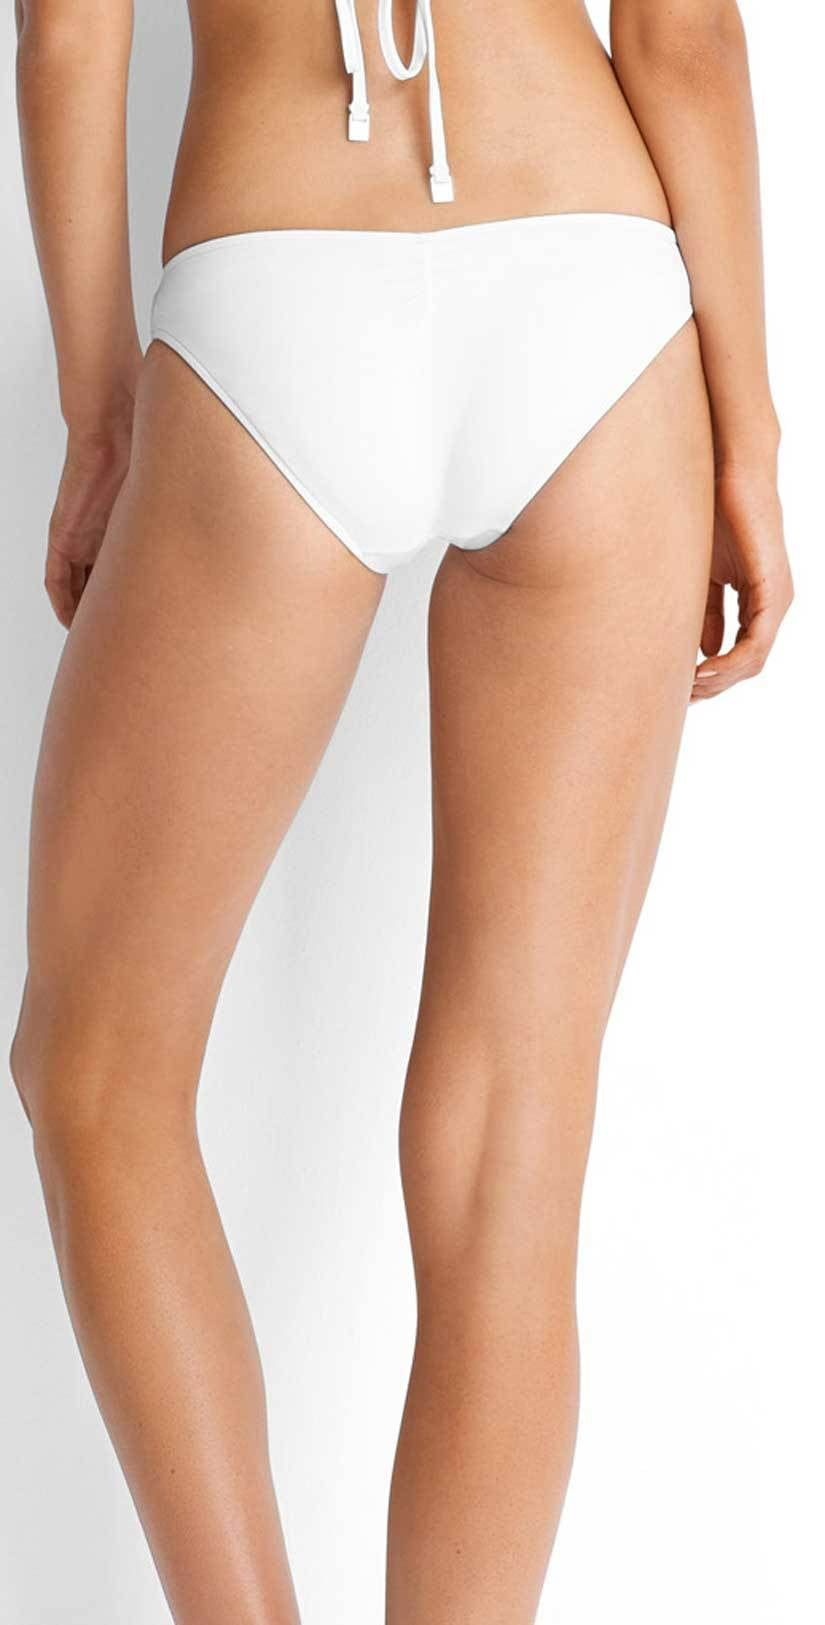 Seafolly Quilted White Hipster Bottom 40463-065-WHITE: